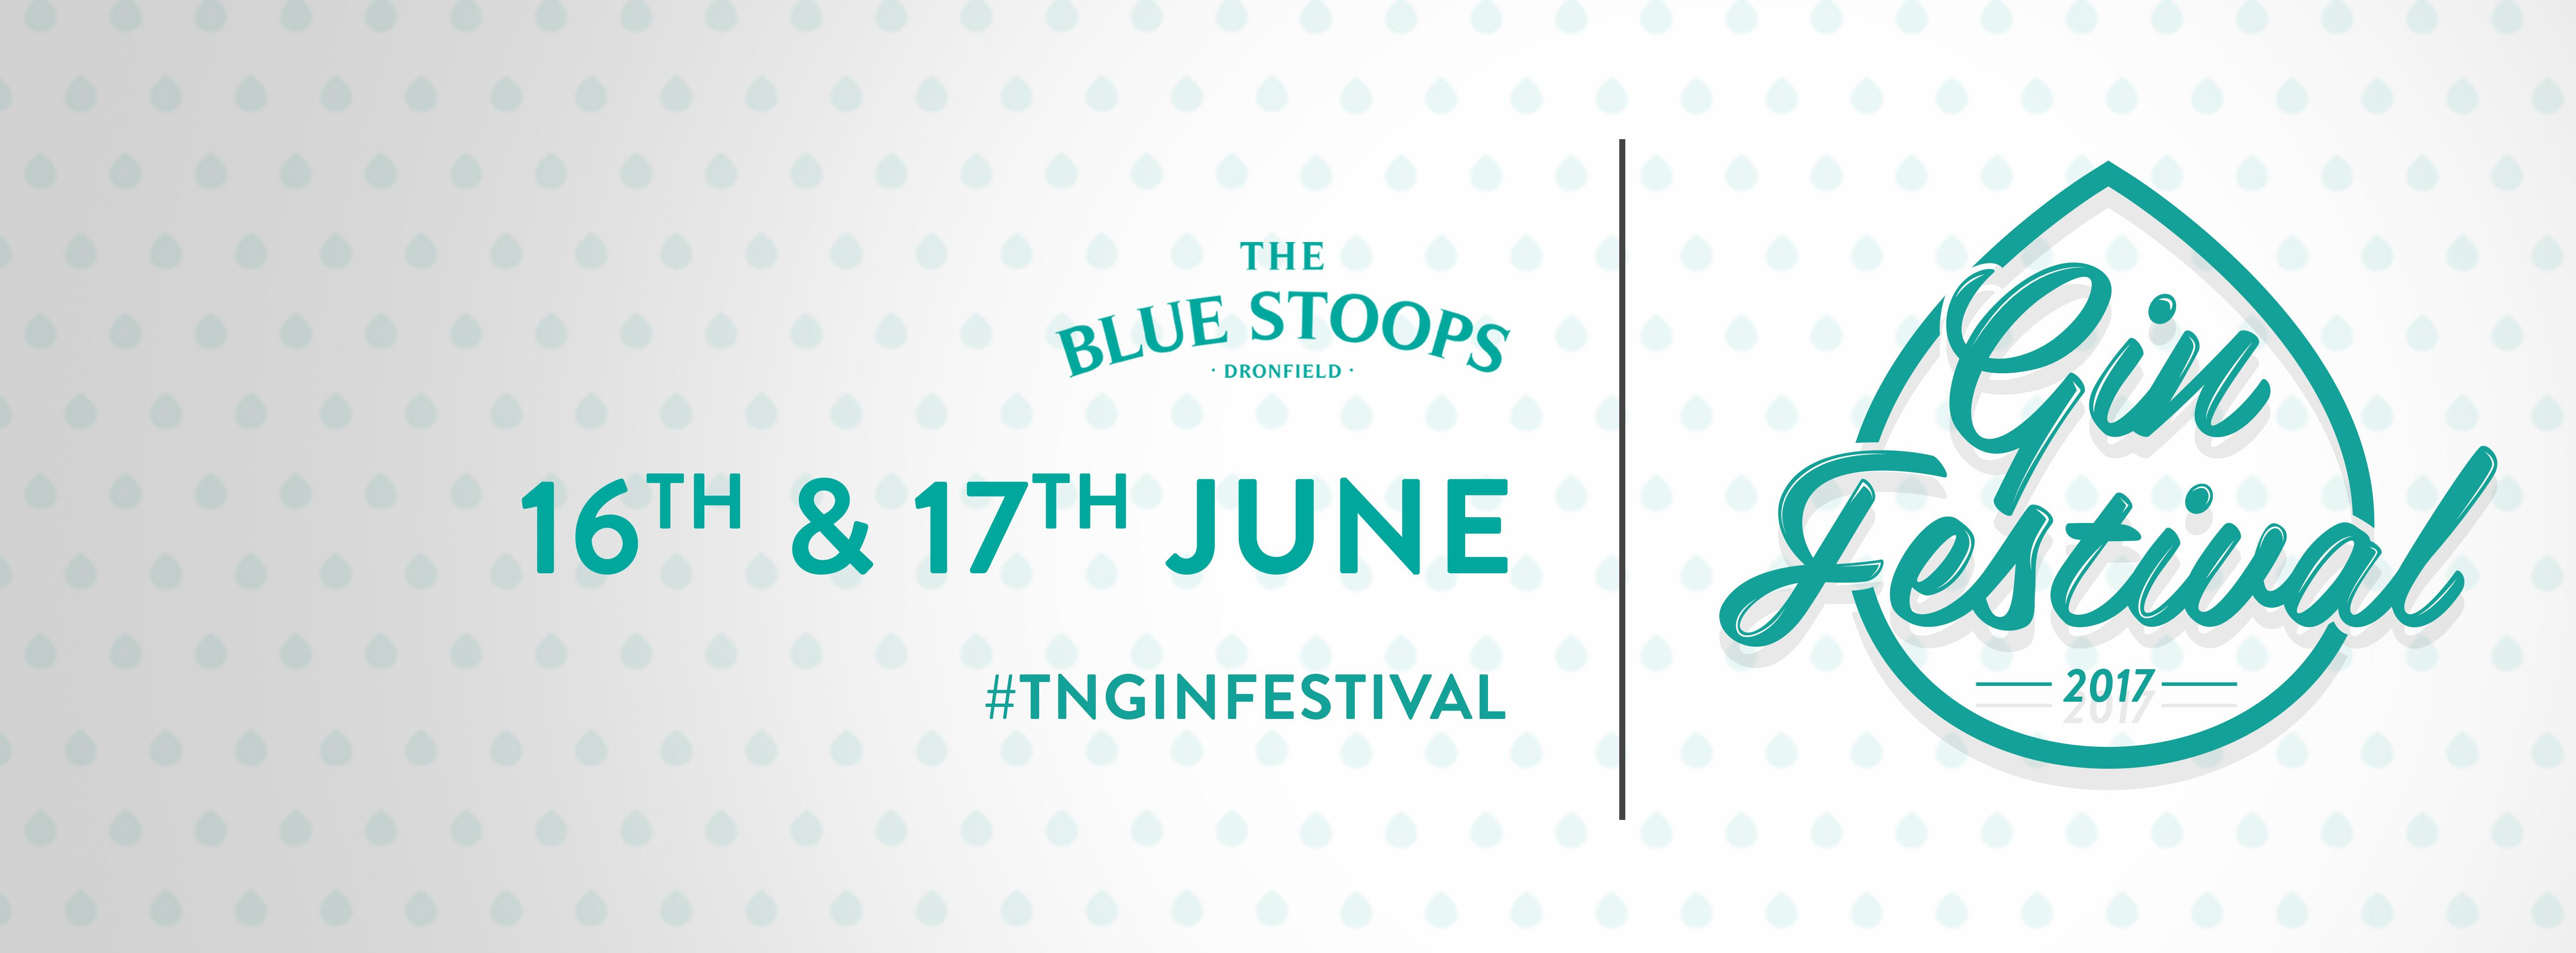 The Blue Stoops Gin Festival